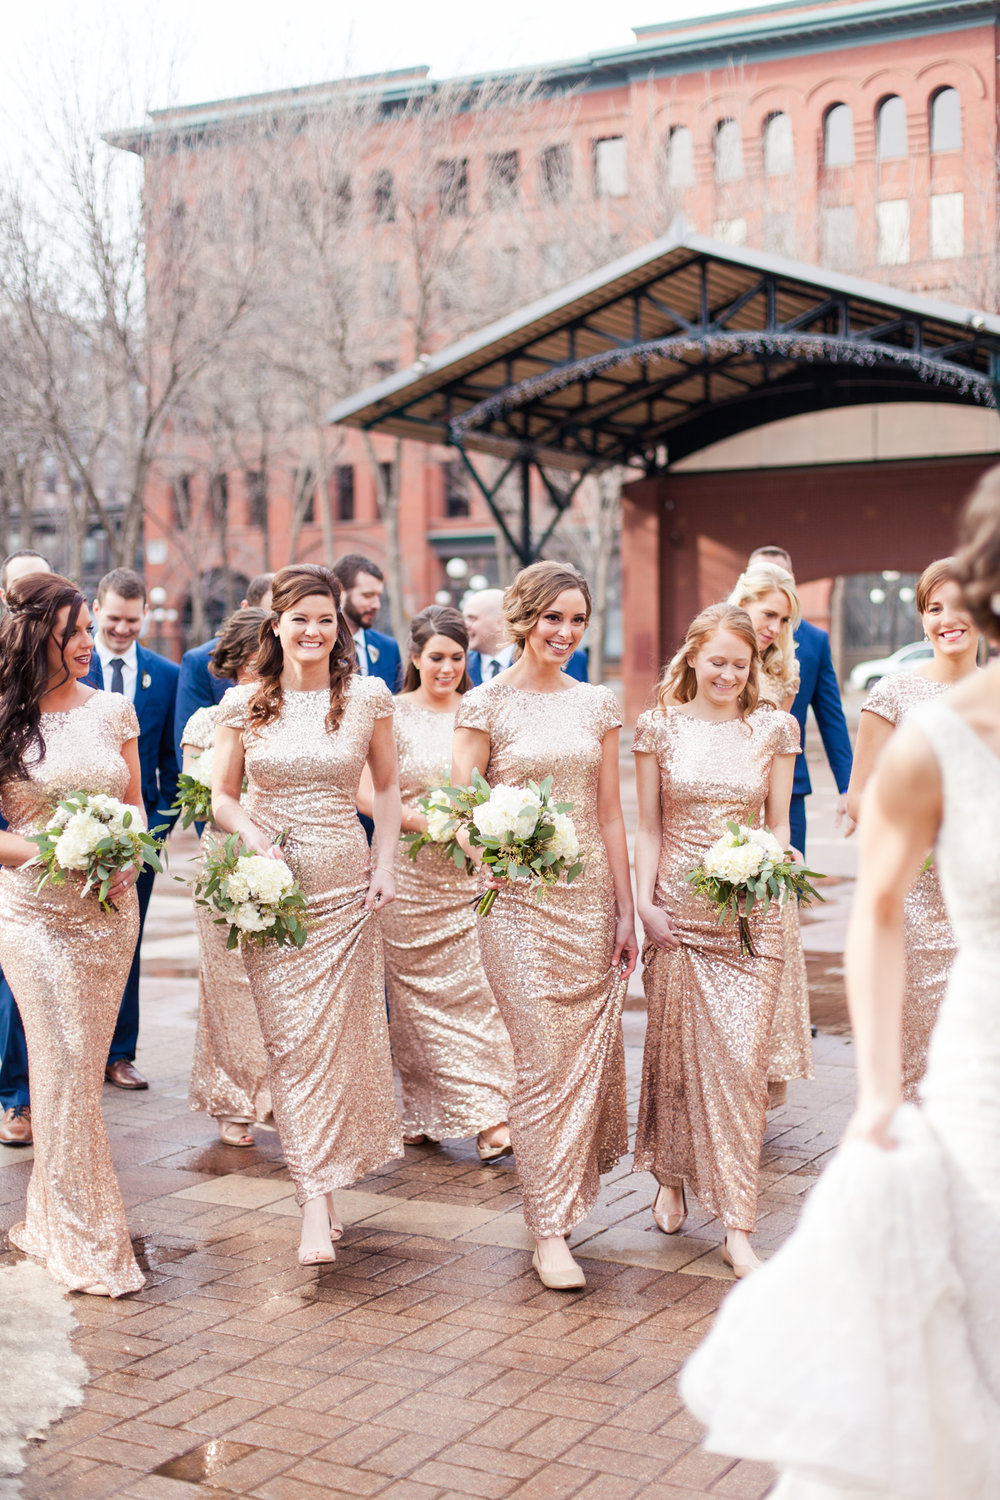 blush bridesmaids dresses with sleeves and a scoop back | succulent and white bouquets | nude flats | navy groomsmen  | Sixpence Events & Planning | Jessa Anderson Photography | winter wedding | Mears Park in St Paul, Minnesota